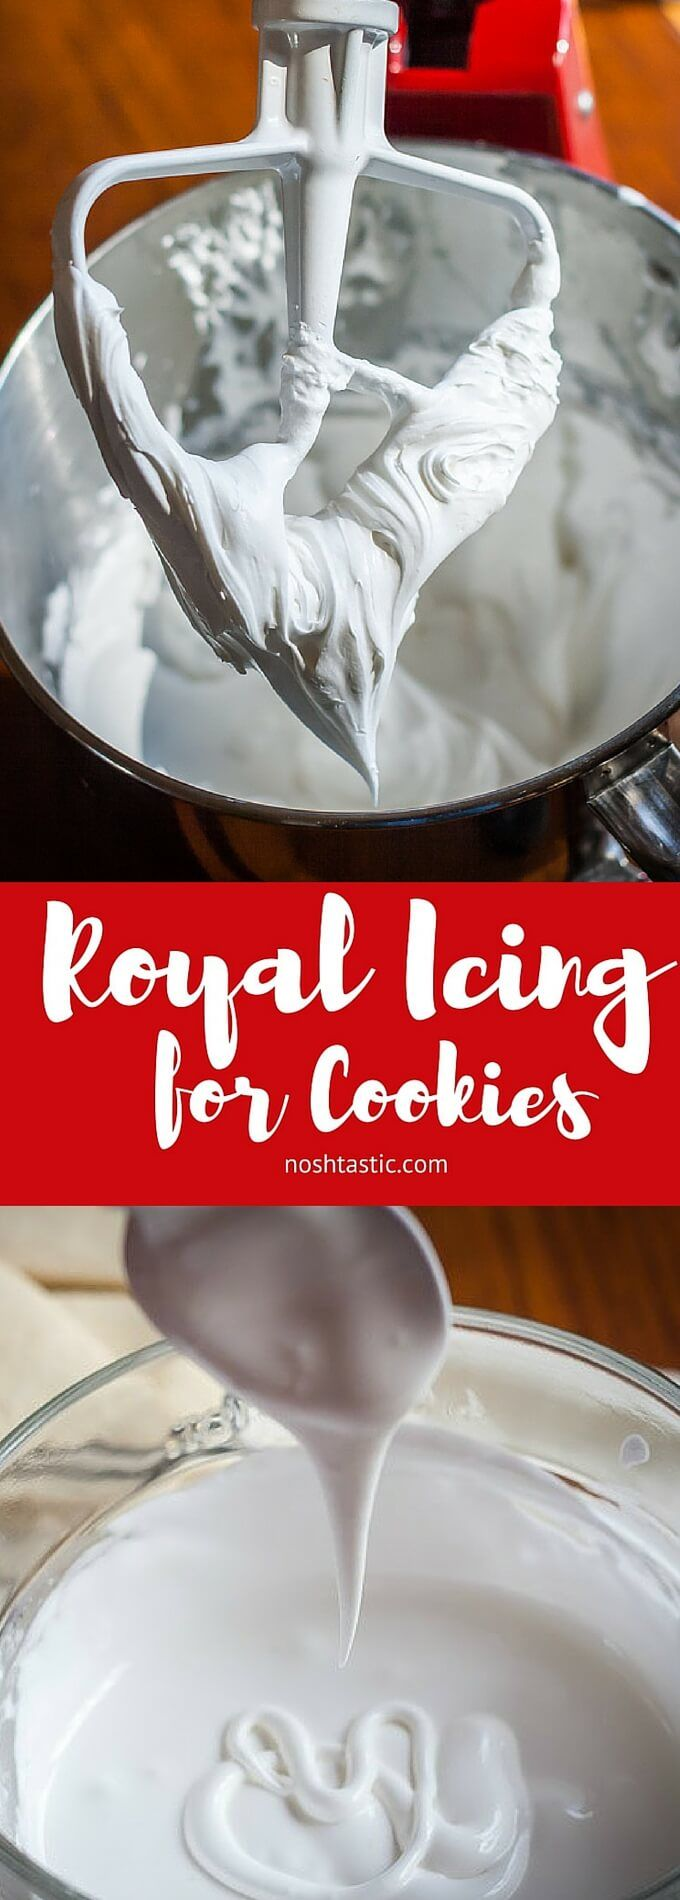 How to Make Royal Icing for Cookies with ONLY 2 Ingredients! it's gluten free and dairy free too